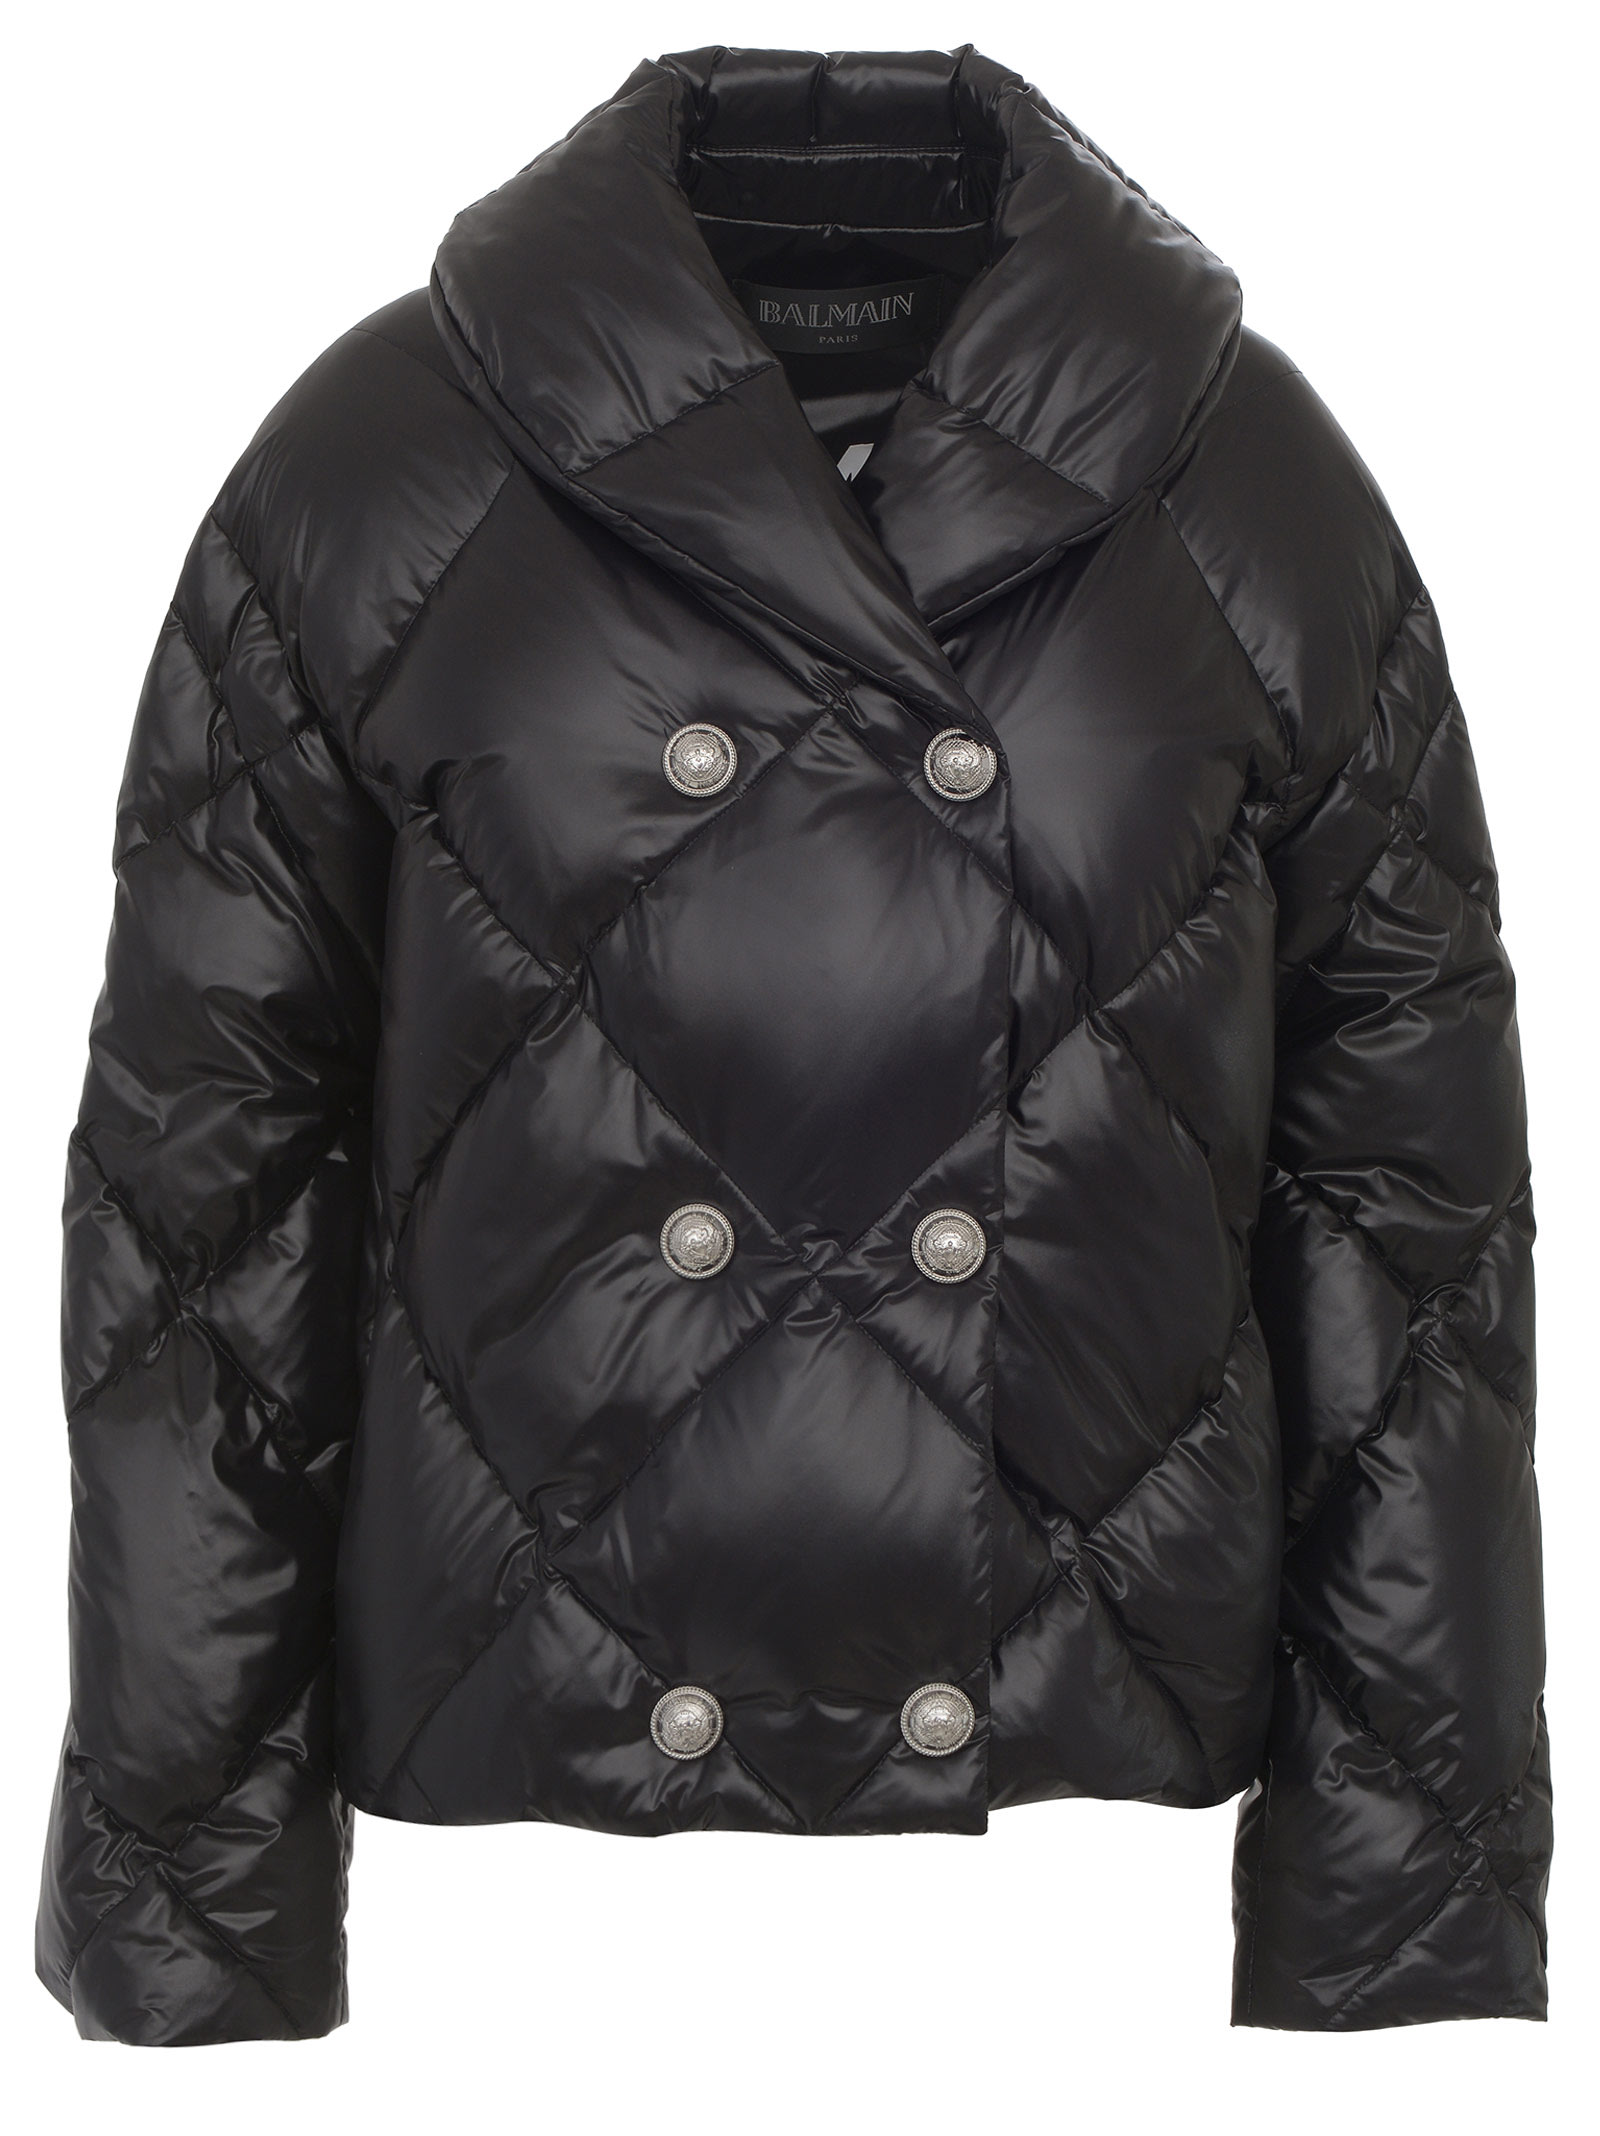 Balmain Paris Down Jacket